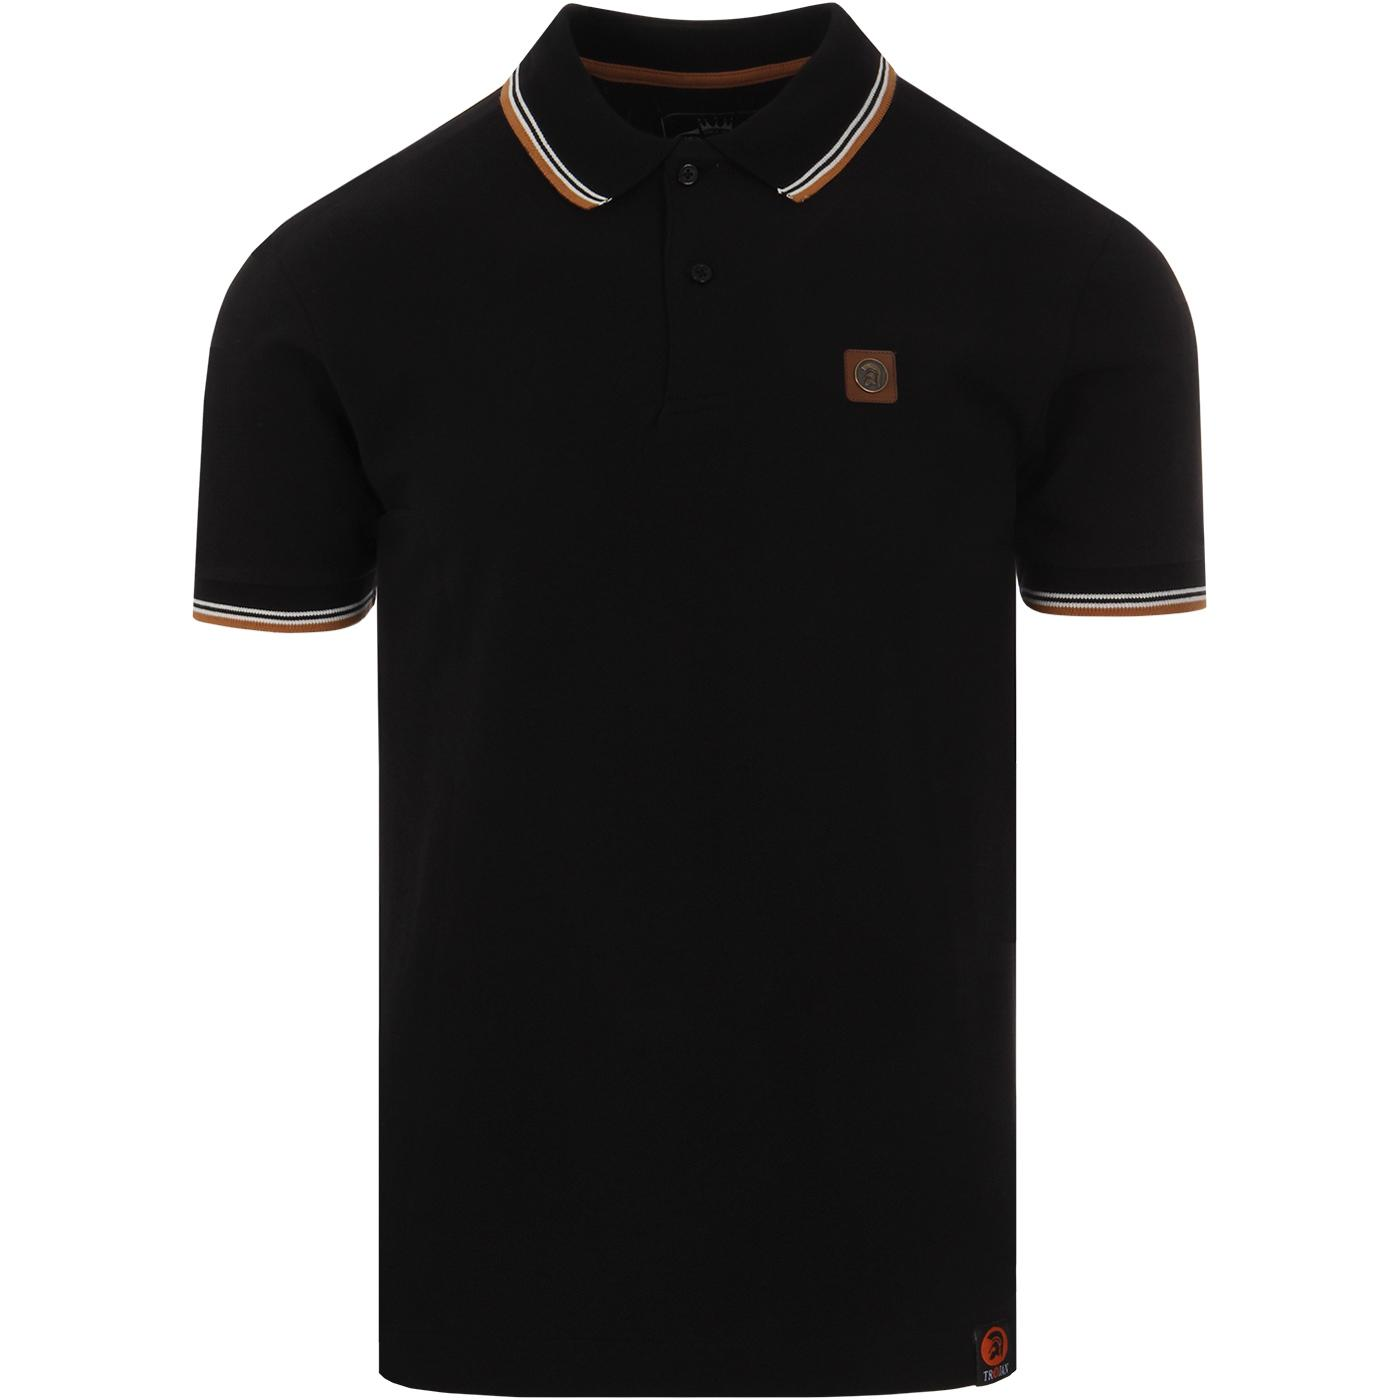 TROJAN RECORDS Classic Tipped Mod Polo Shirt BLACK